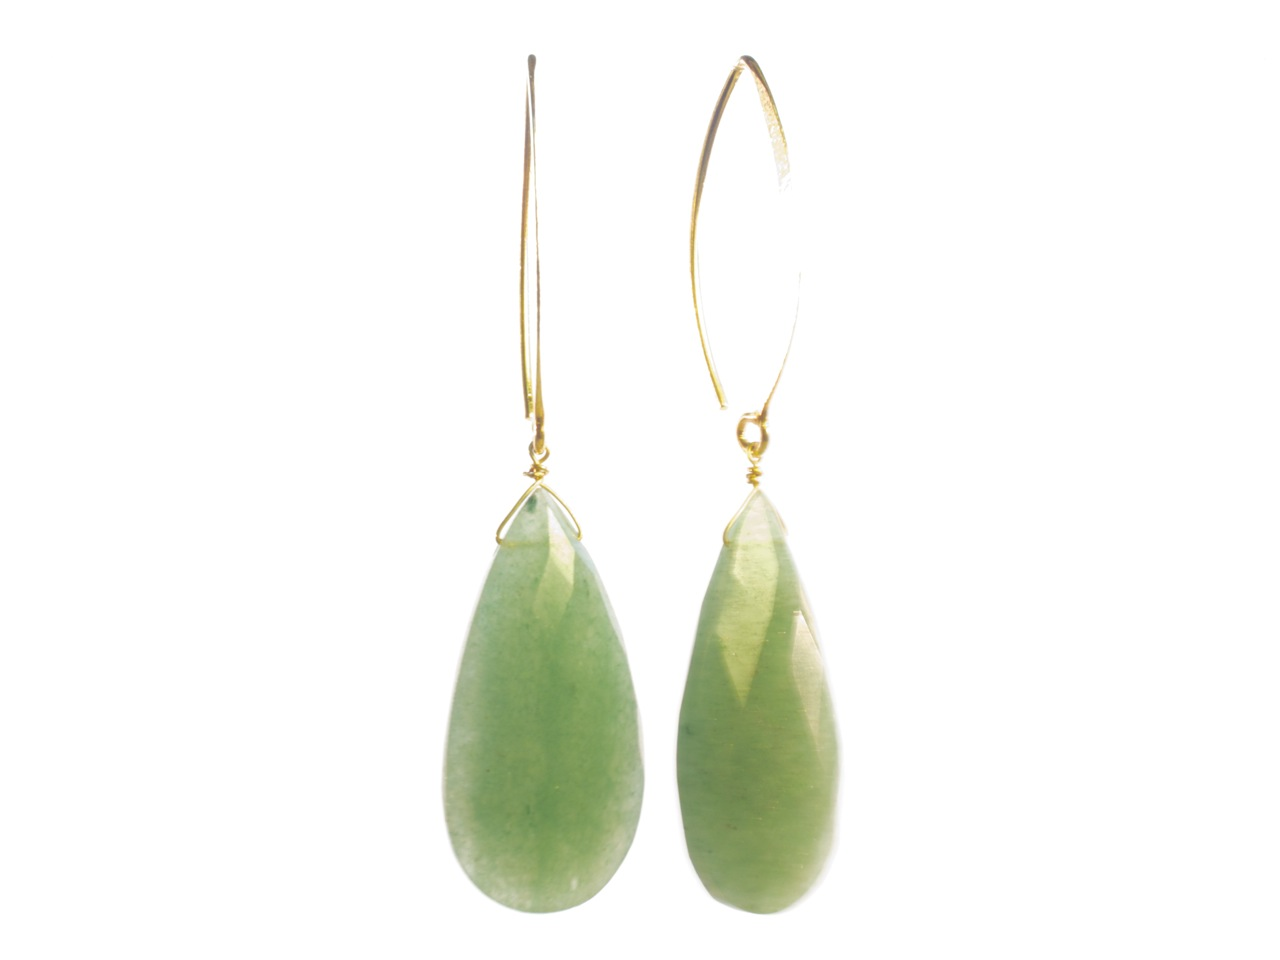 Earring Facet Cut Long Loose Drop Jade With Large Marquis Hook – E1169